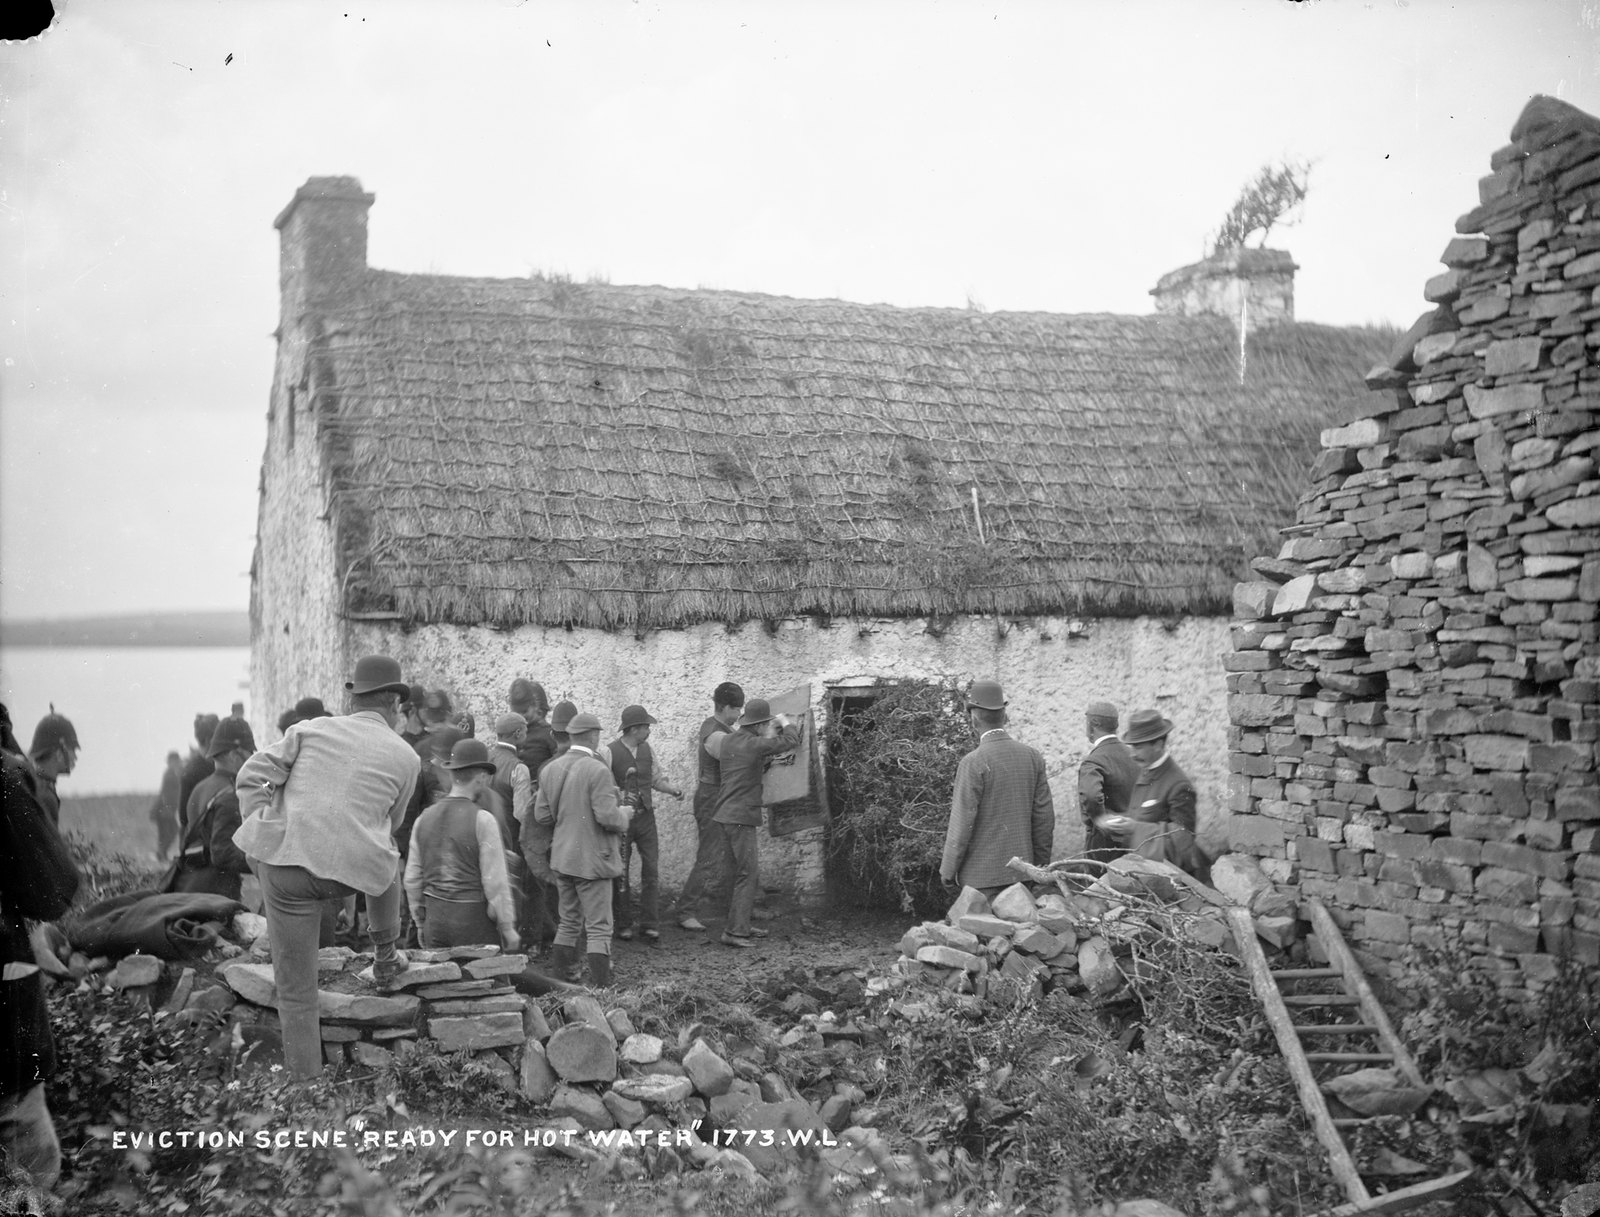 "Eviction scene ""Ready for hot water"" 